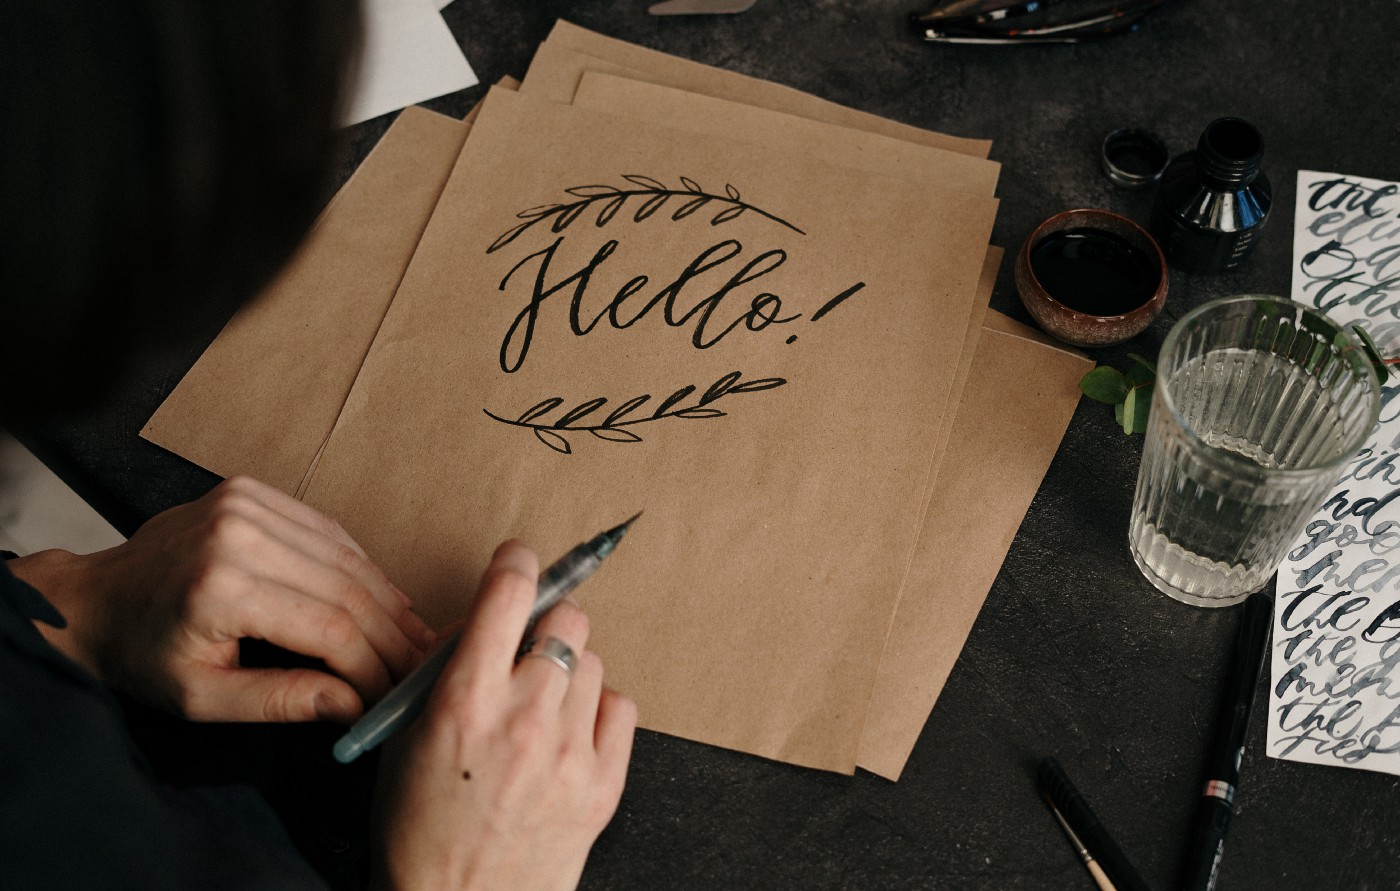 """The word """"Hello"""" written in calligraphy on a cardstock."""